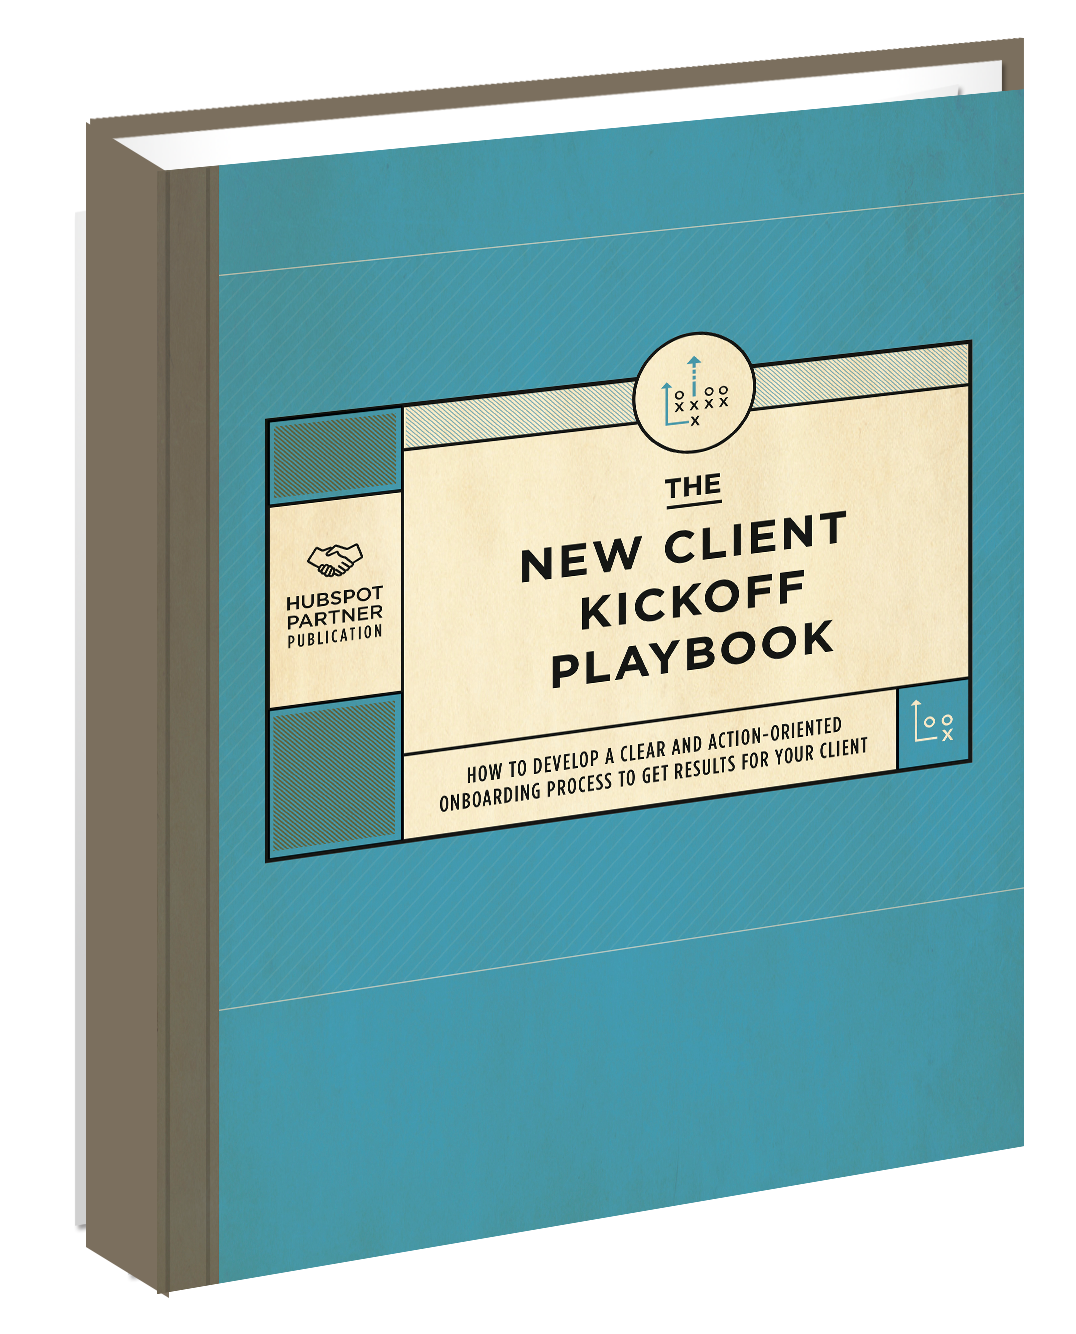 New Client Kickoff Playbook